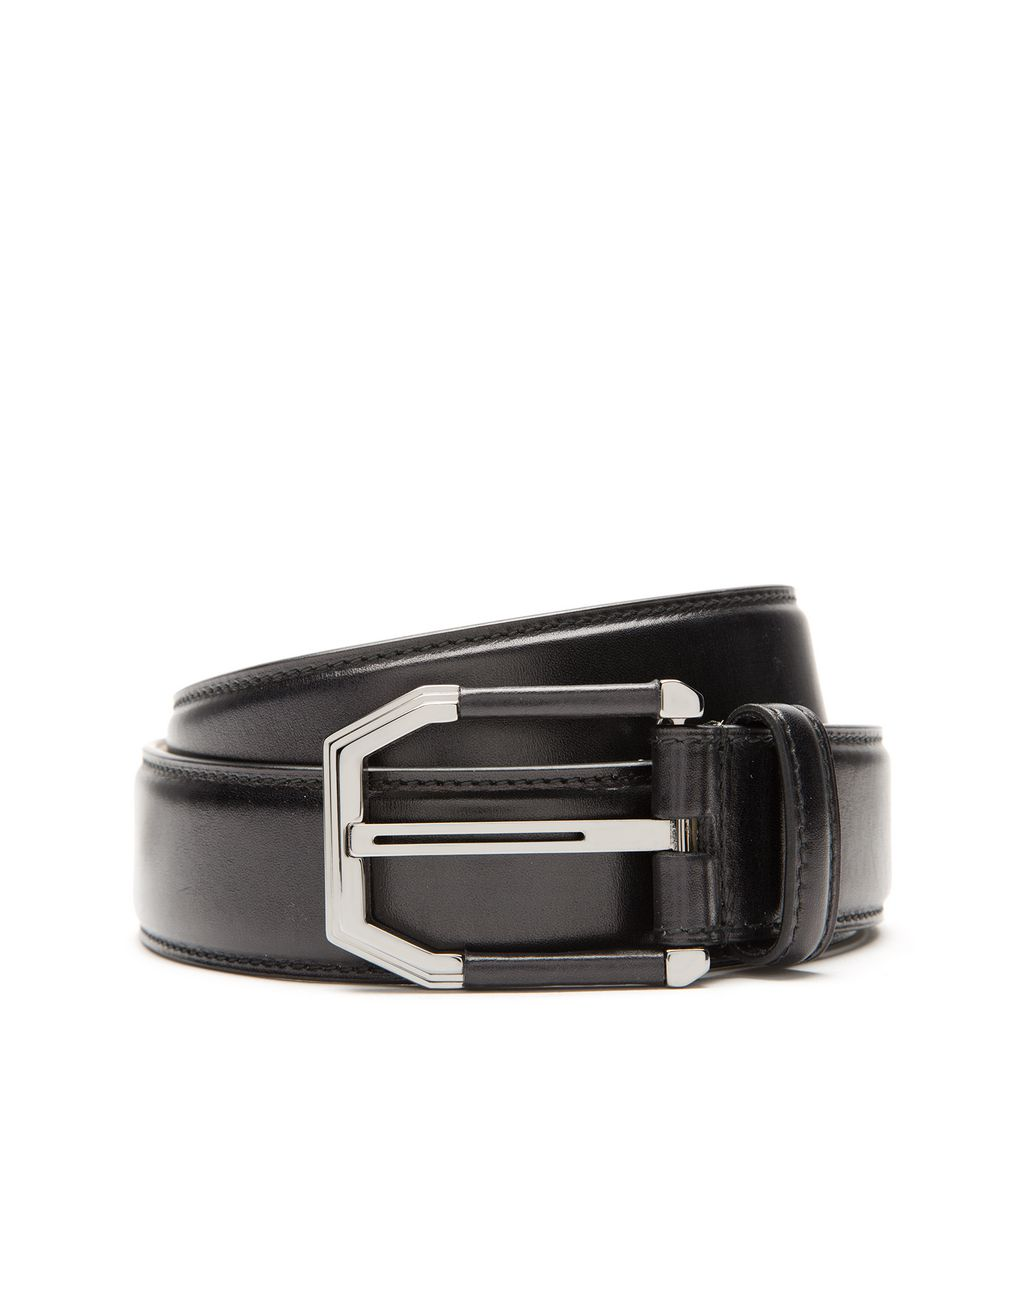 BRIONI Black Belt in Calfskin Leather with Leather Details on Buckle Belt U r